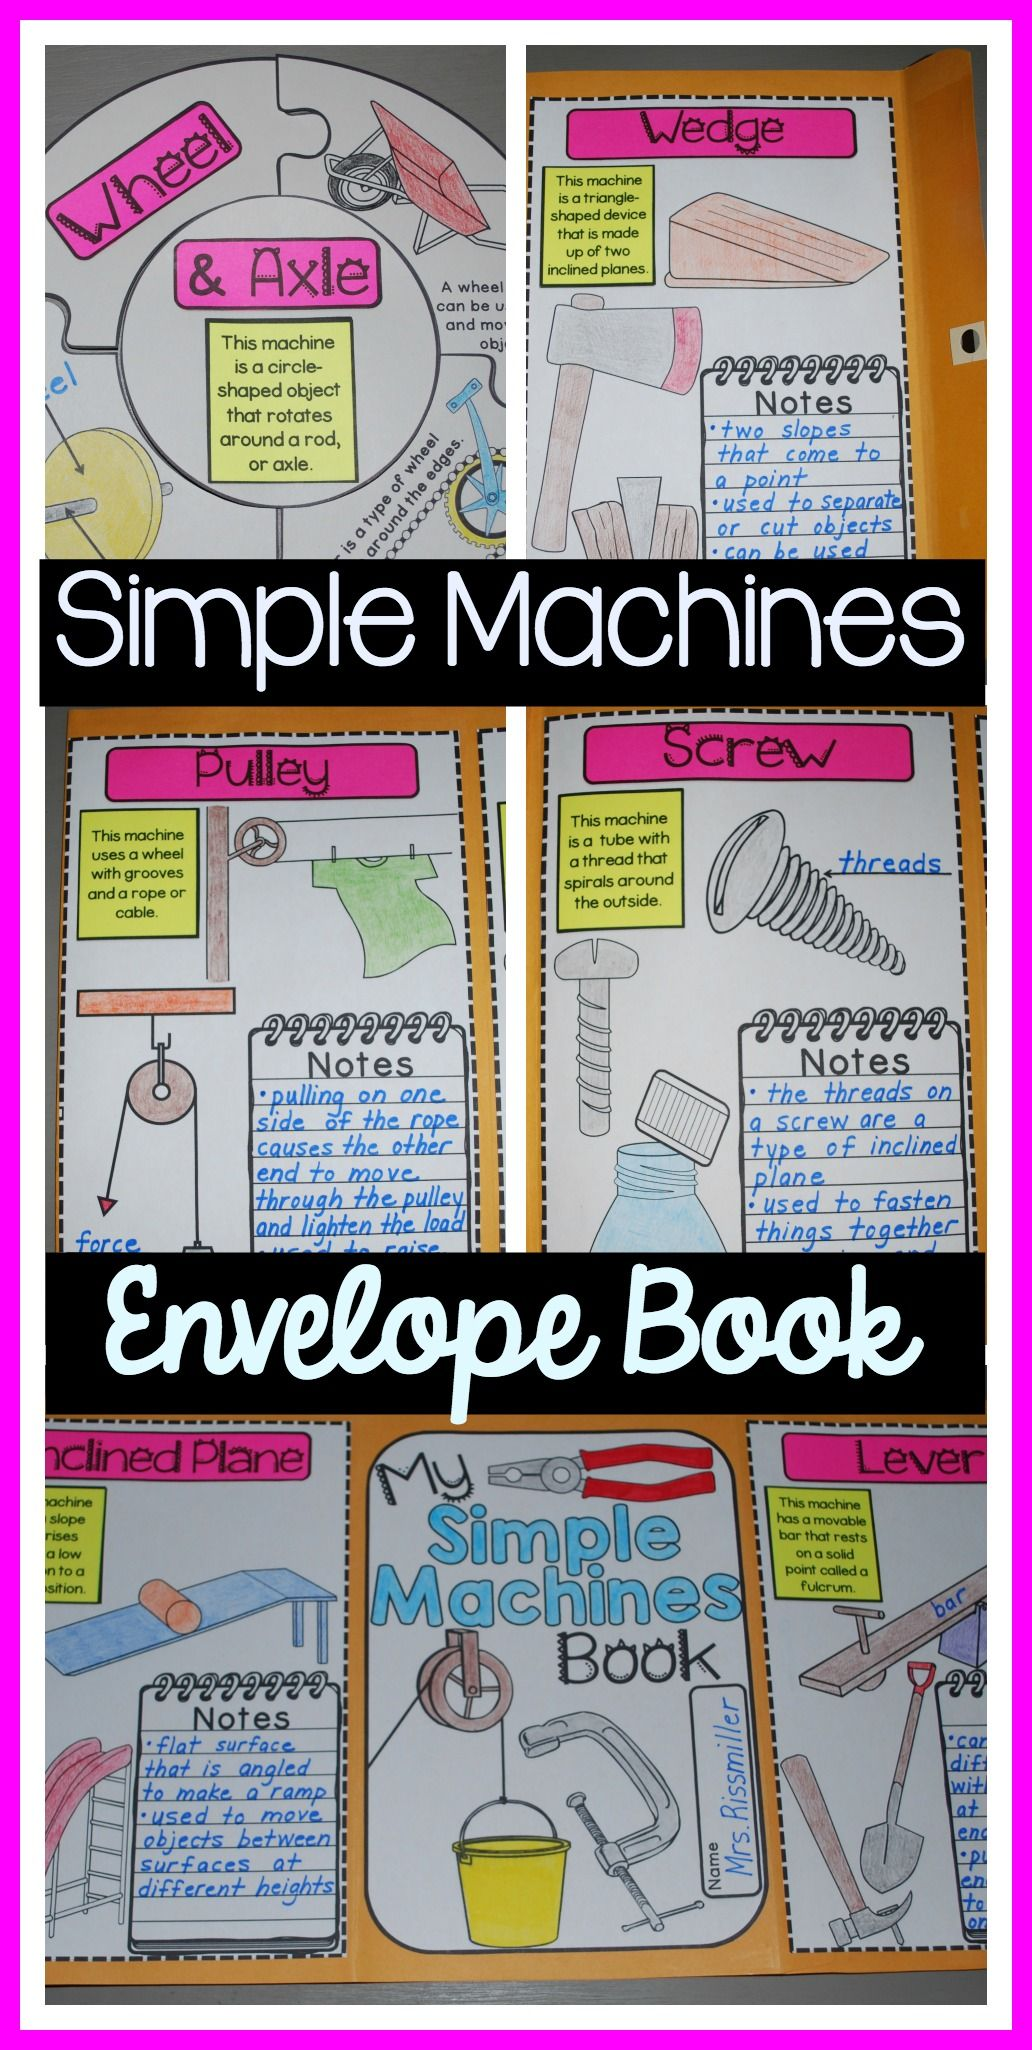 small resolution of Simple Machines Worksheets For 6th Grade   Printable Worksheets and  Activities for Teachers